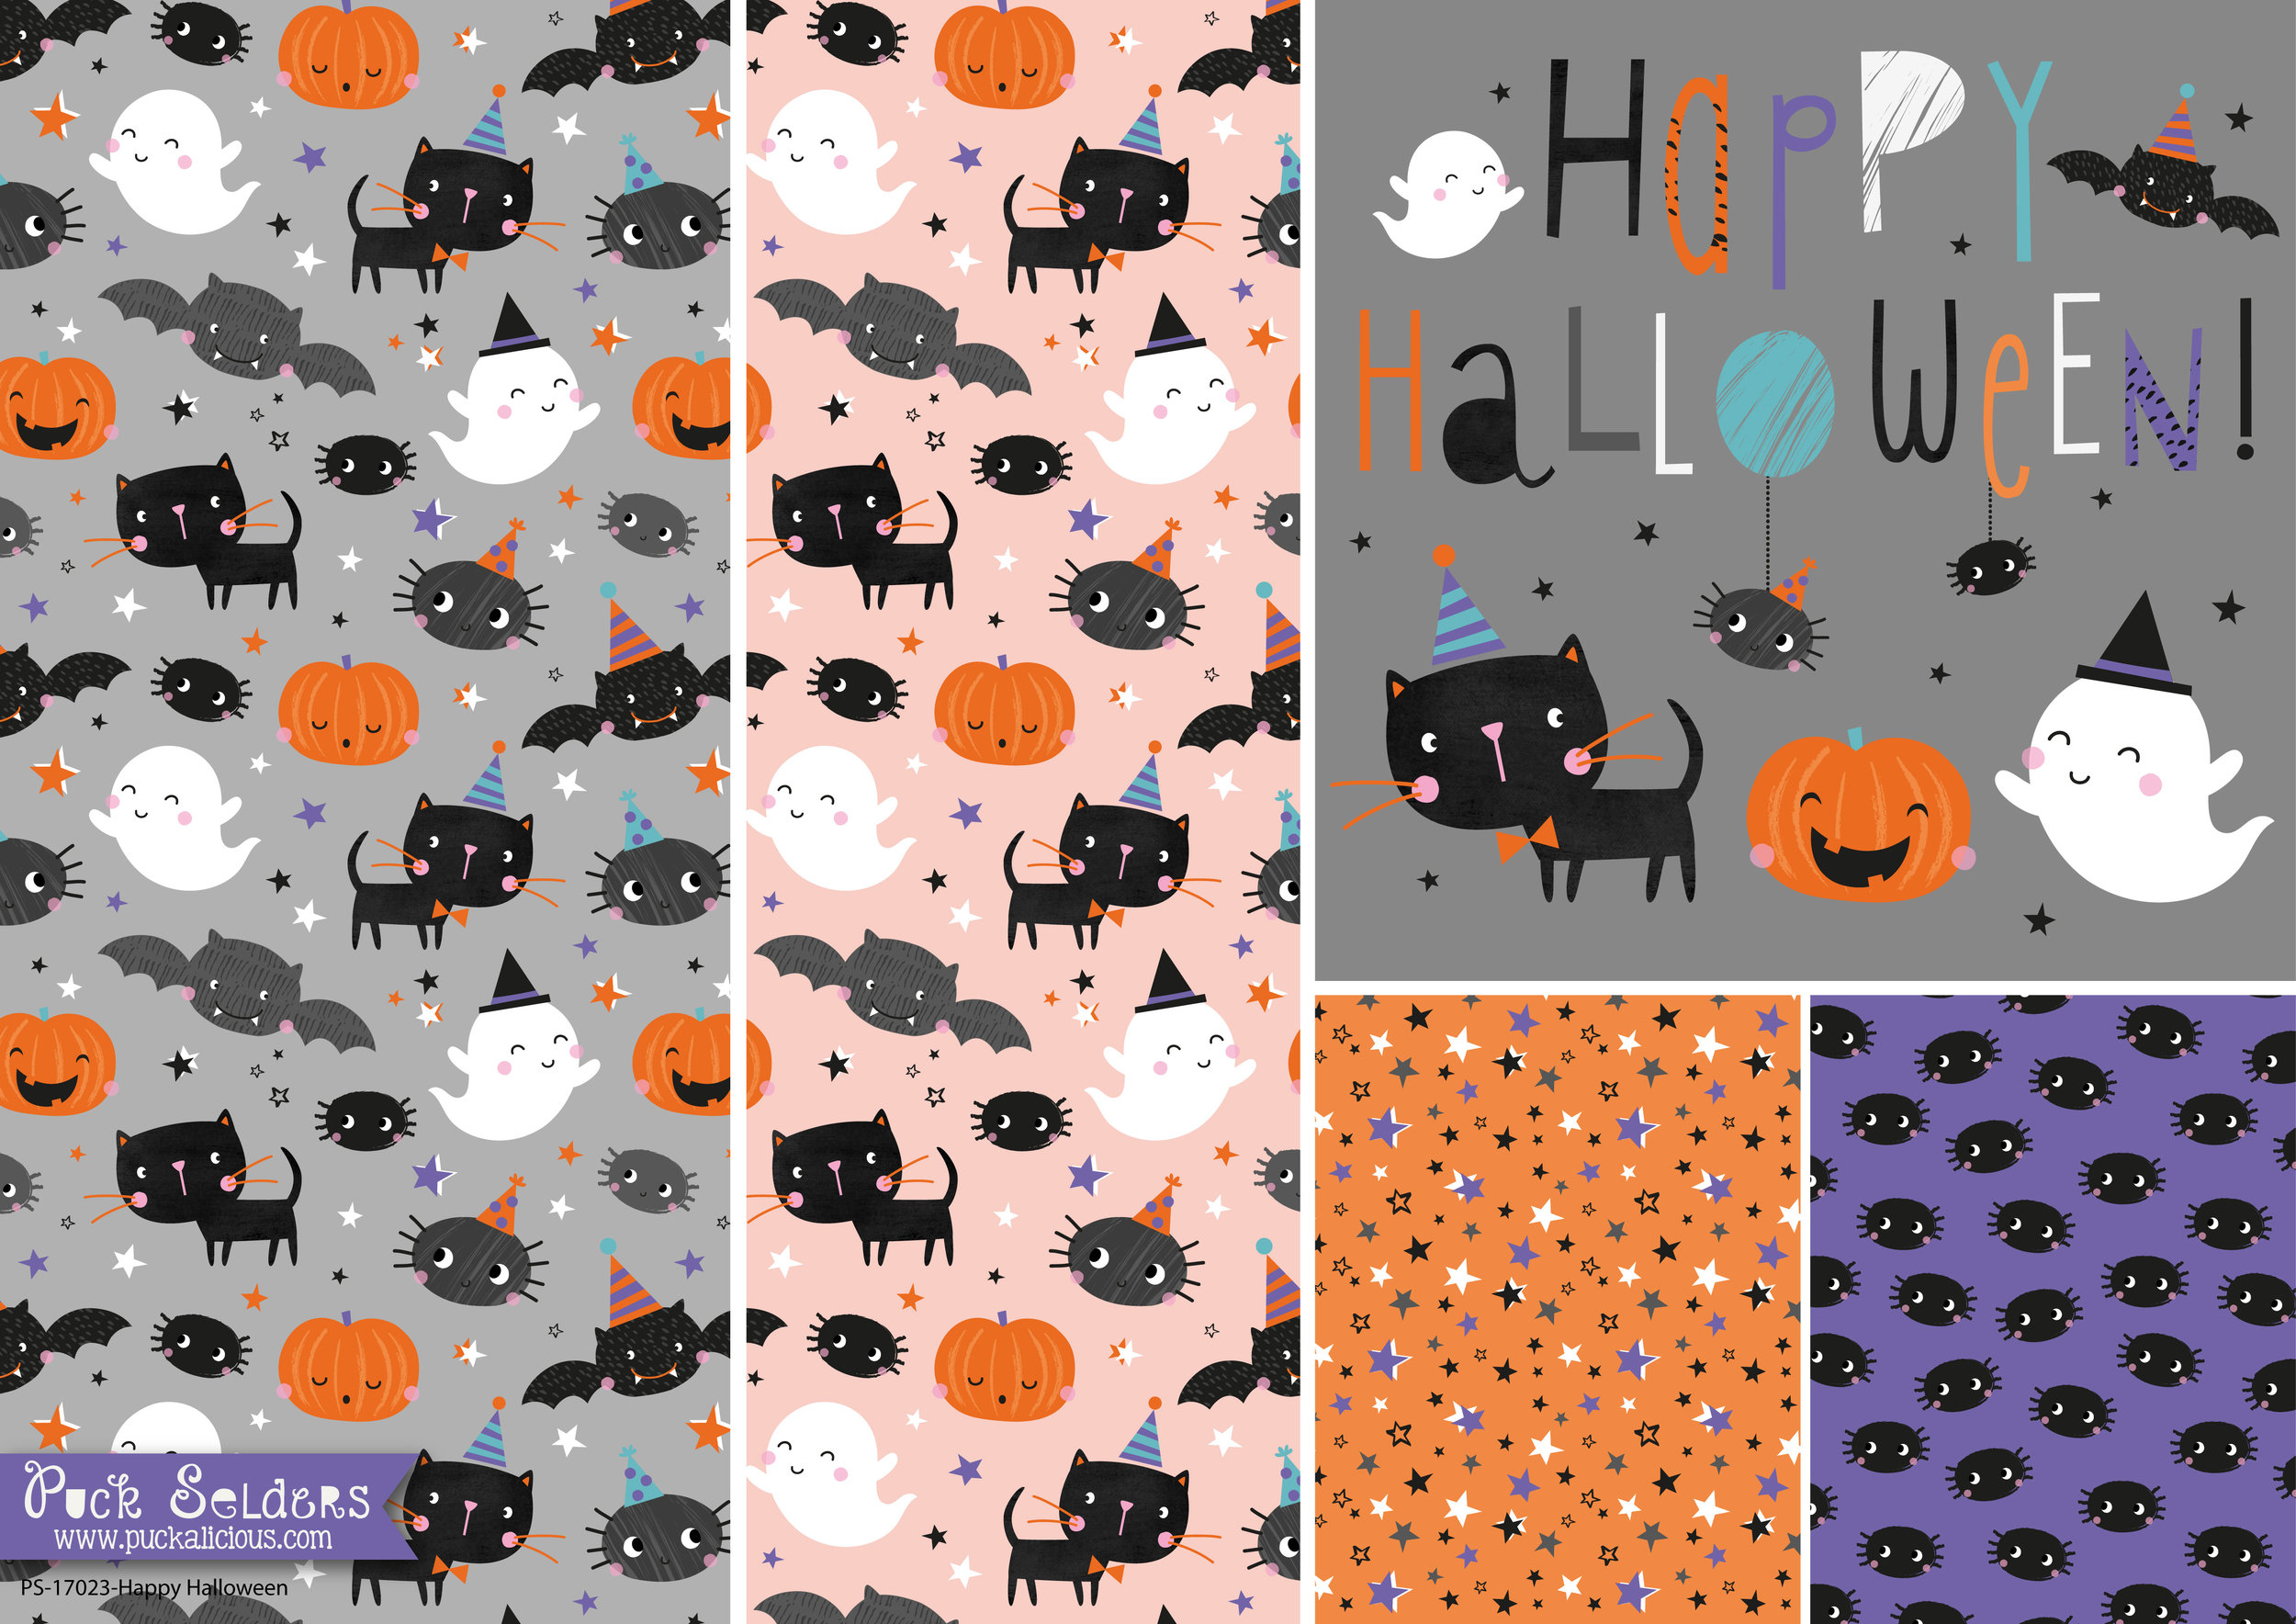 PS-17023-Happy Halloween-01.jpg